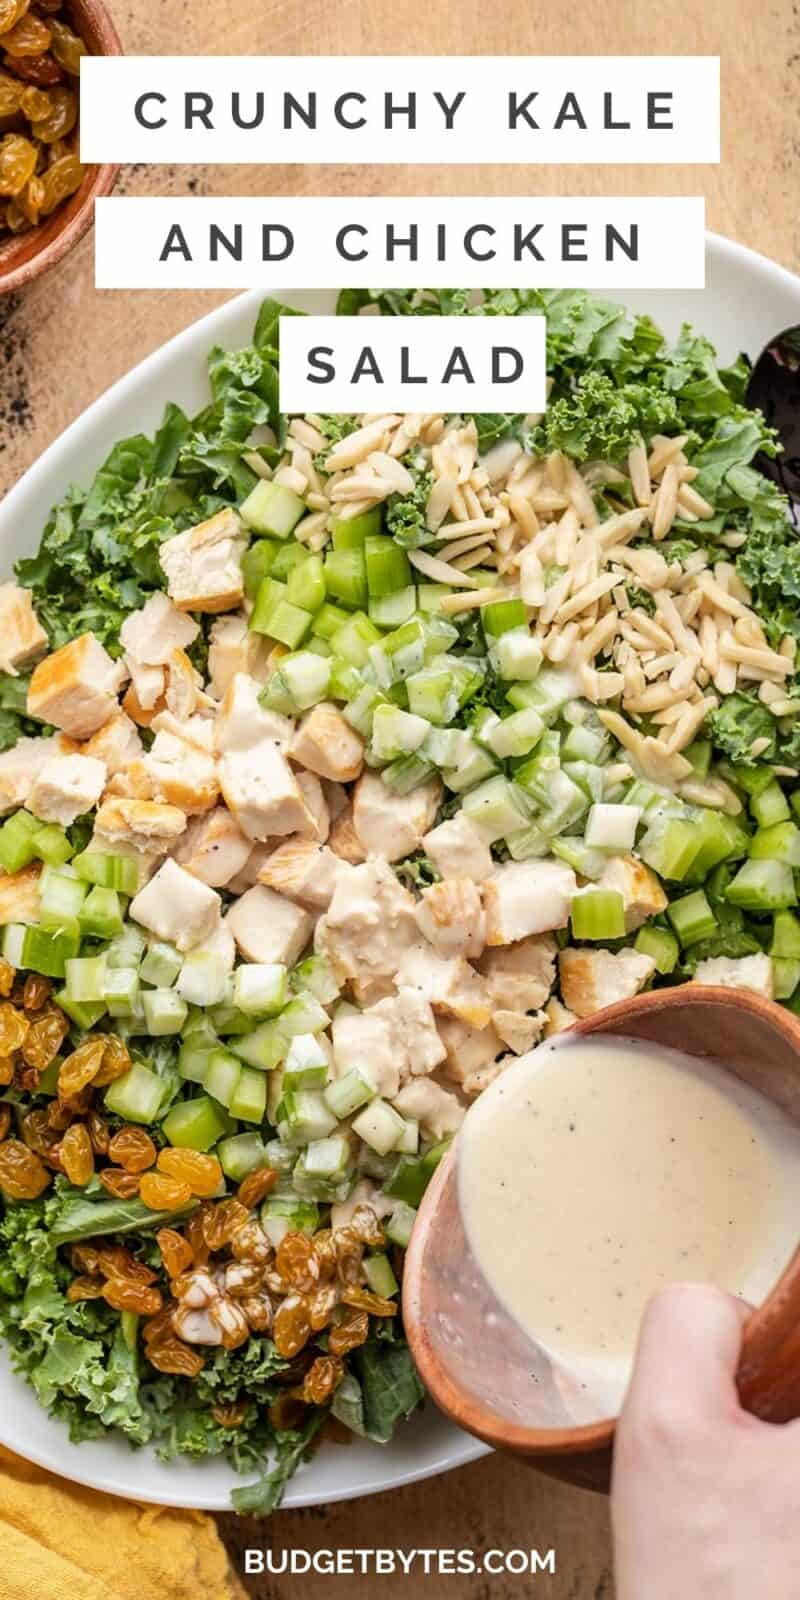 Close up of dressing being poured over kale and chicken salad, title text at the top